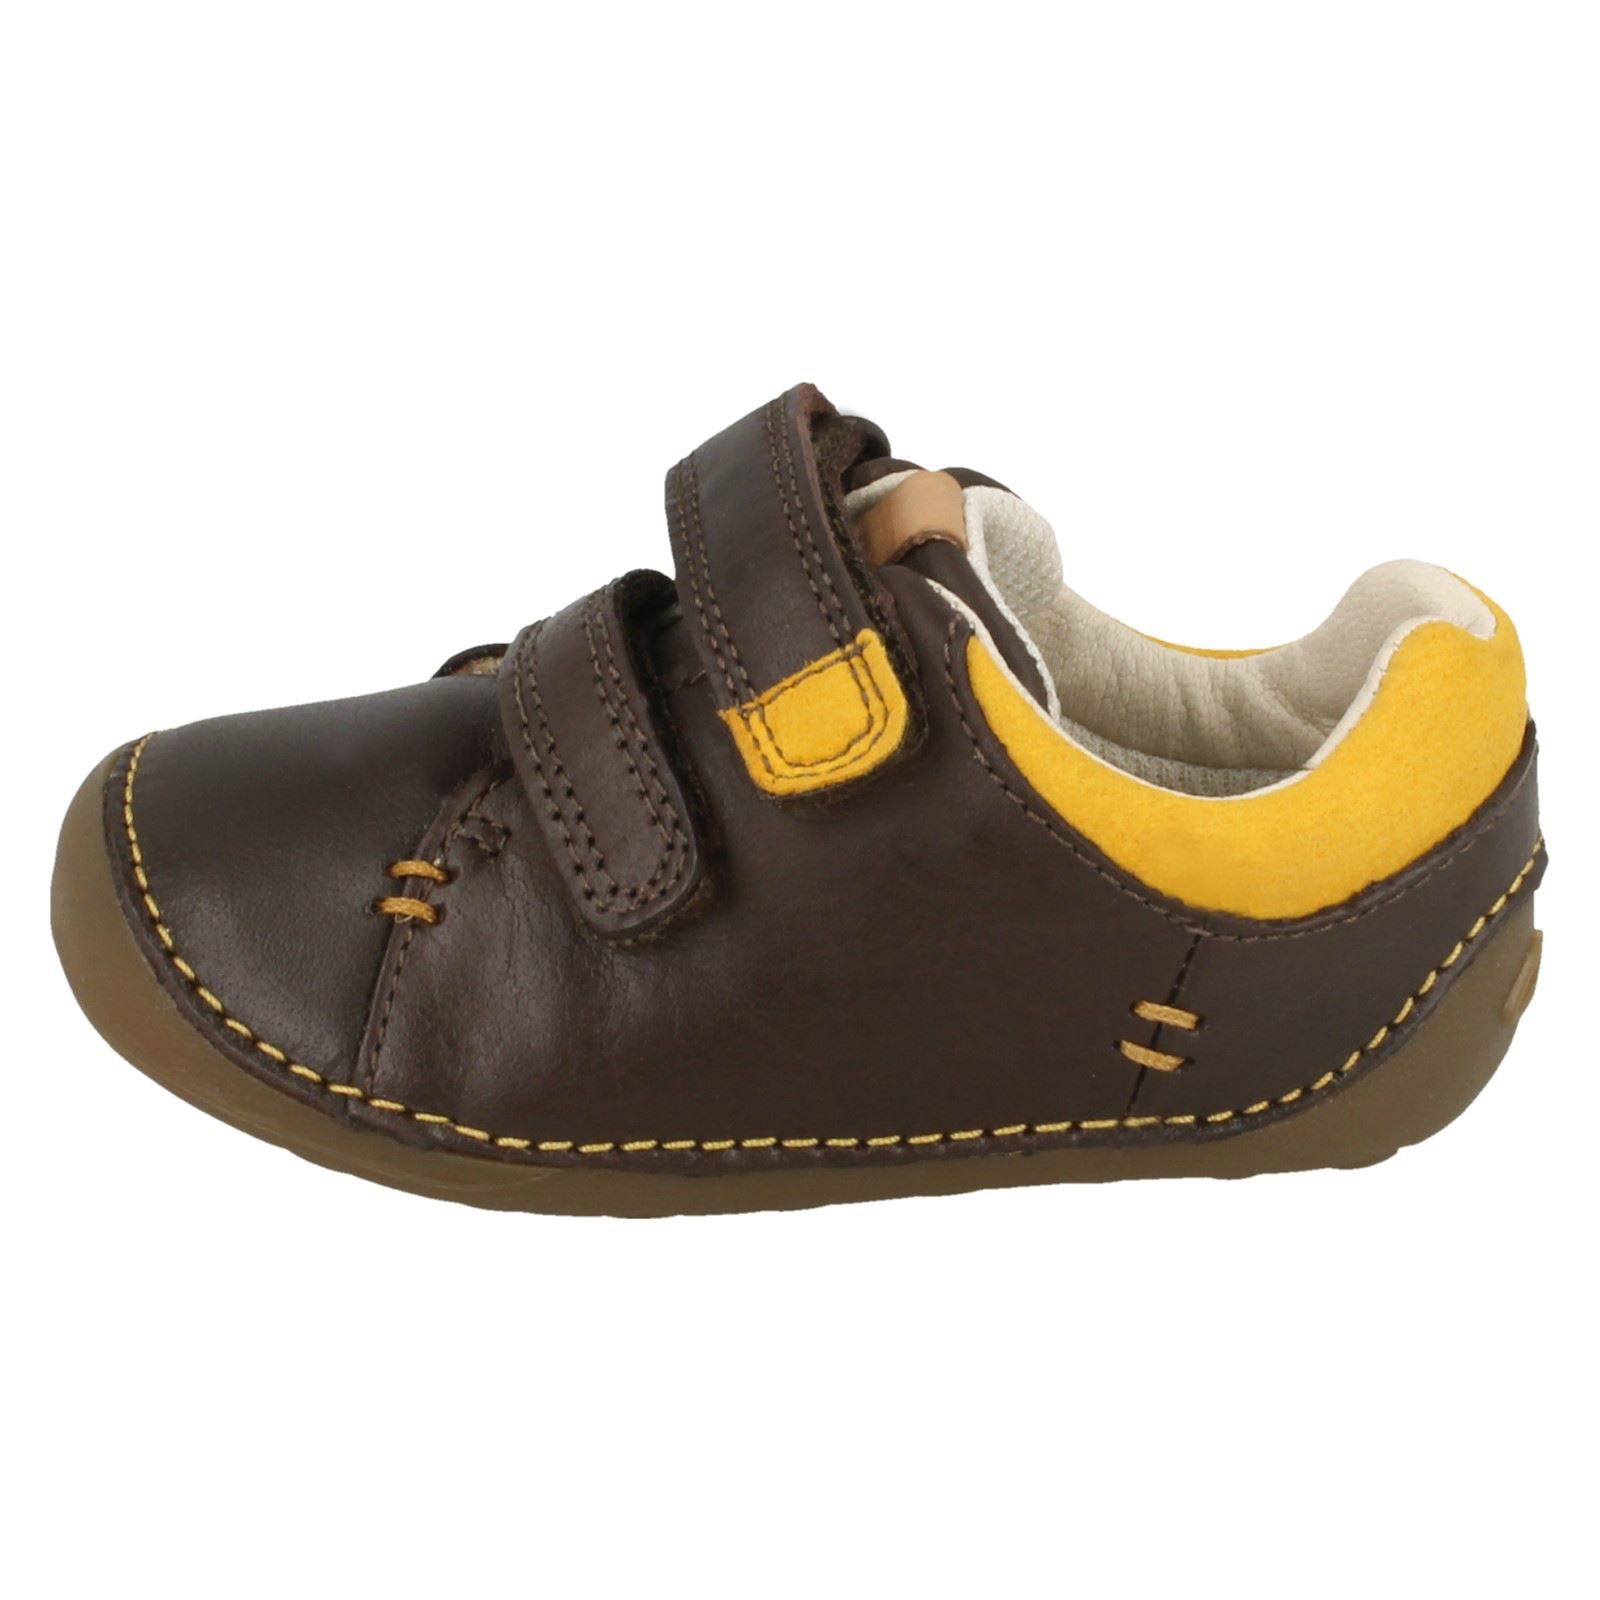 Boys Clarks First Shoes *Tiny Toby*